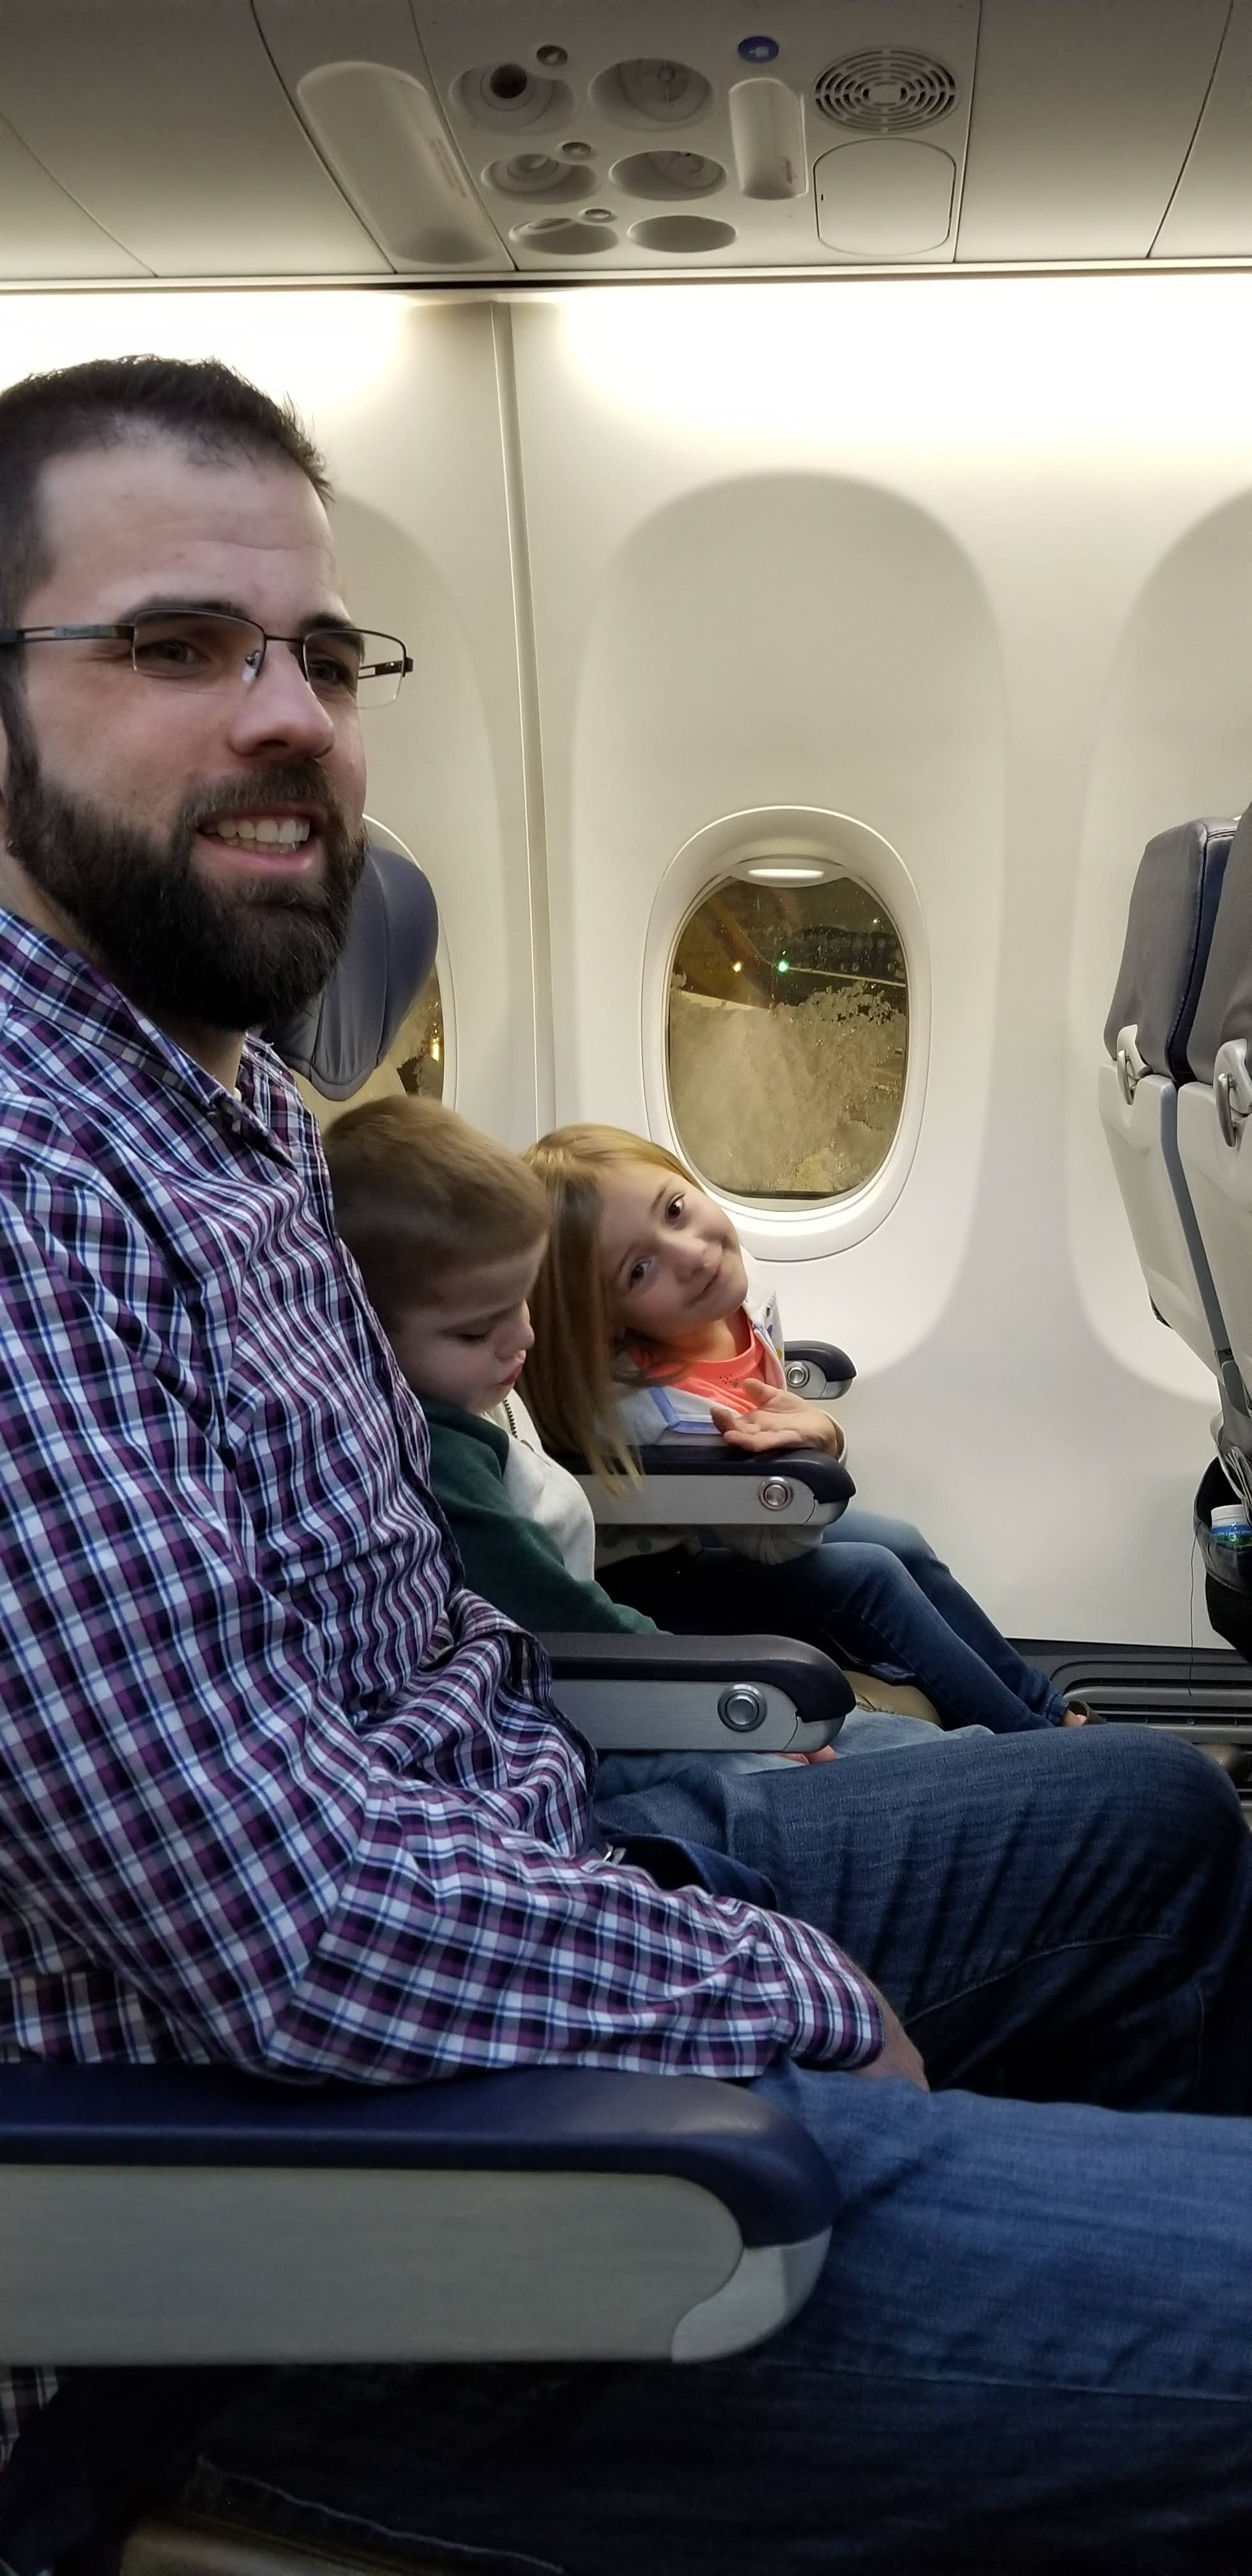 Jordan and the kids are ready for takeoff as we fly to Arizona